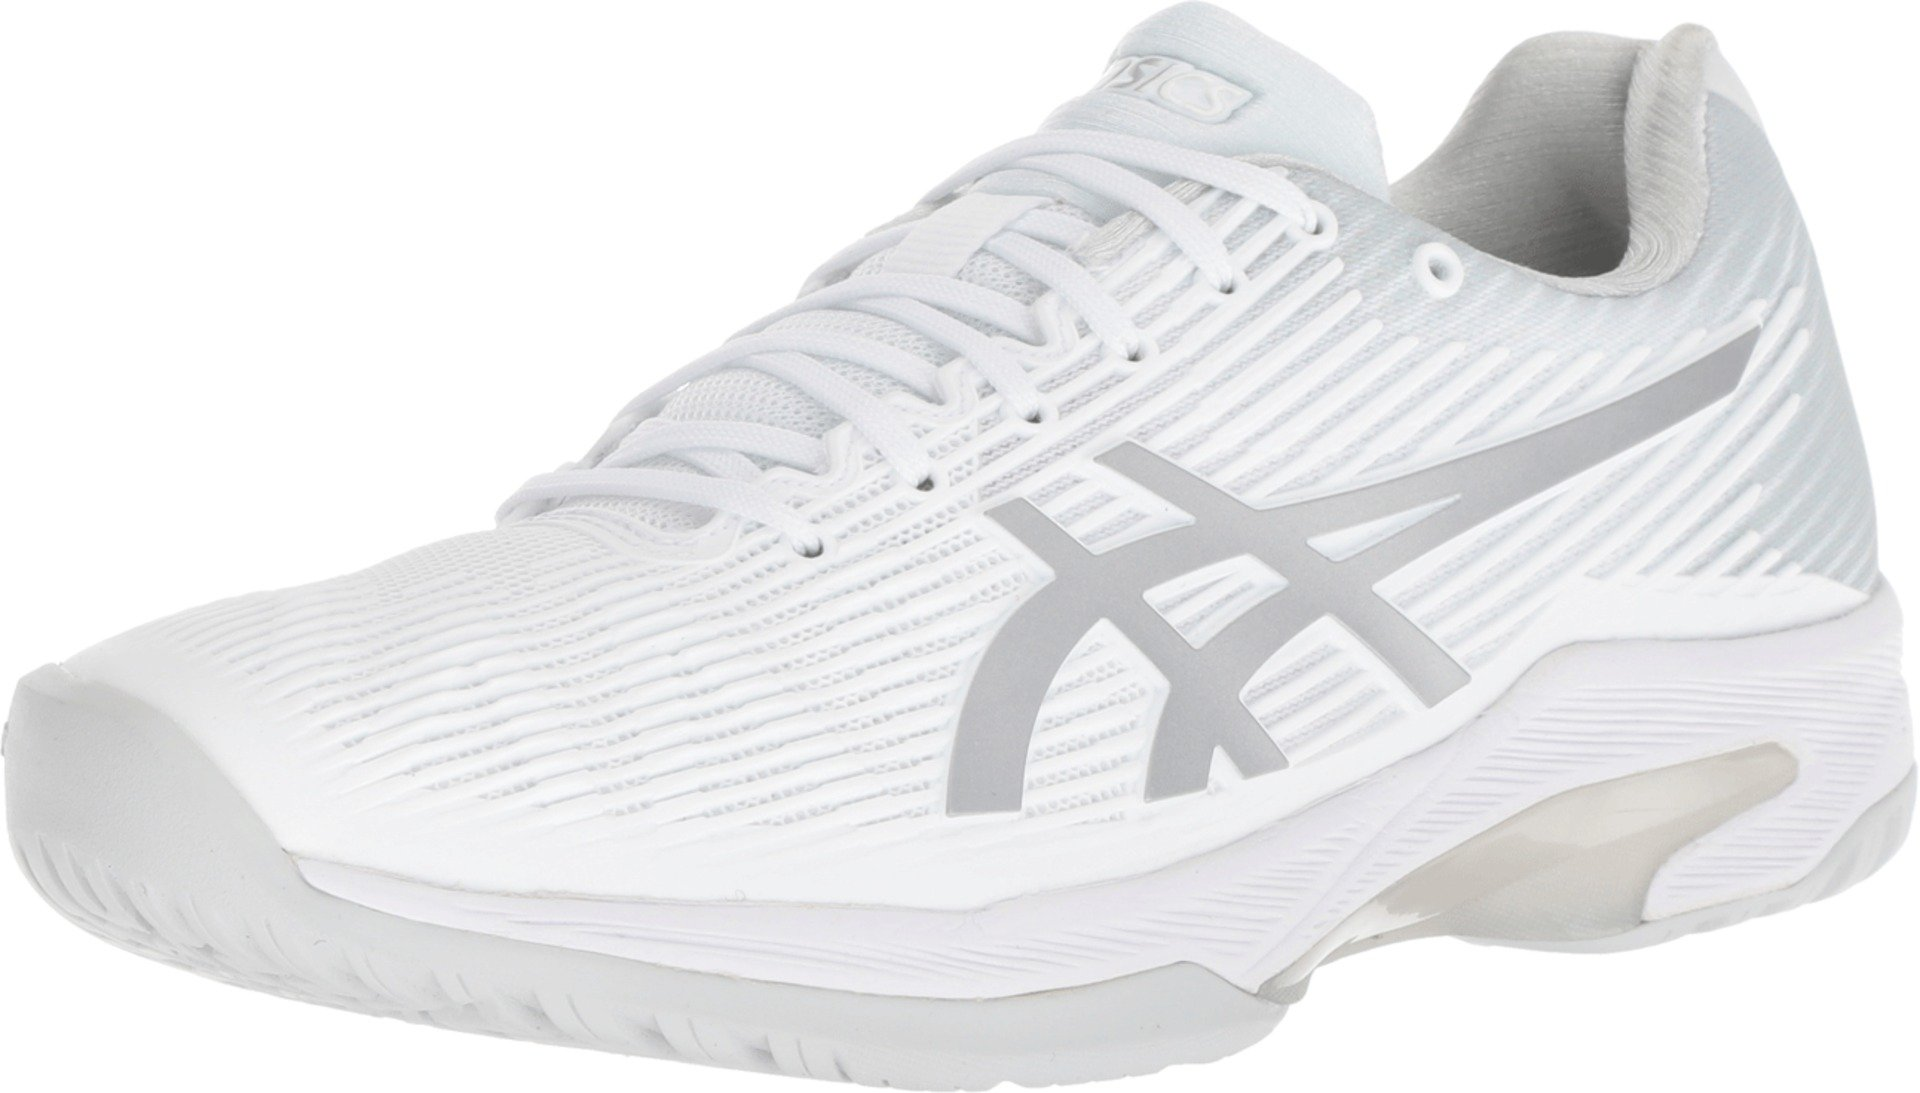 ASICS Womens Solution Speed FF Tennis Shoe, White/Silver, Size 5